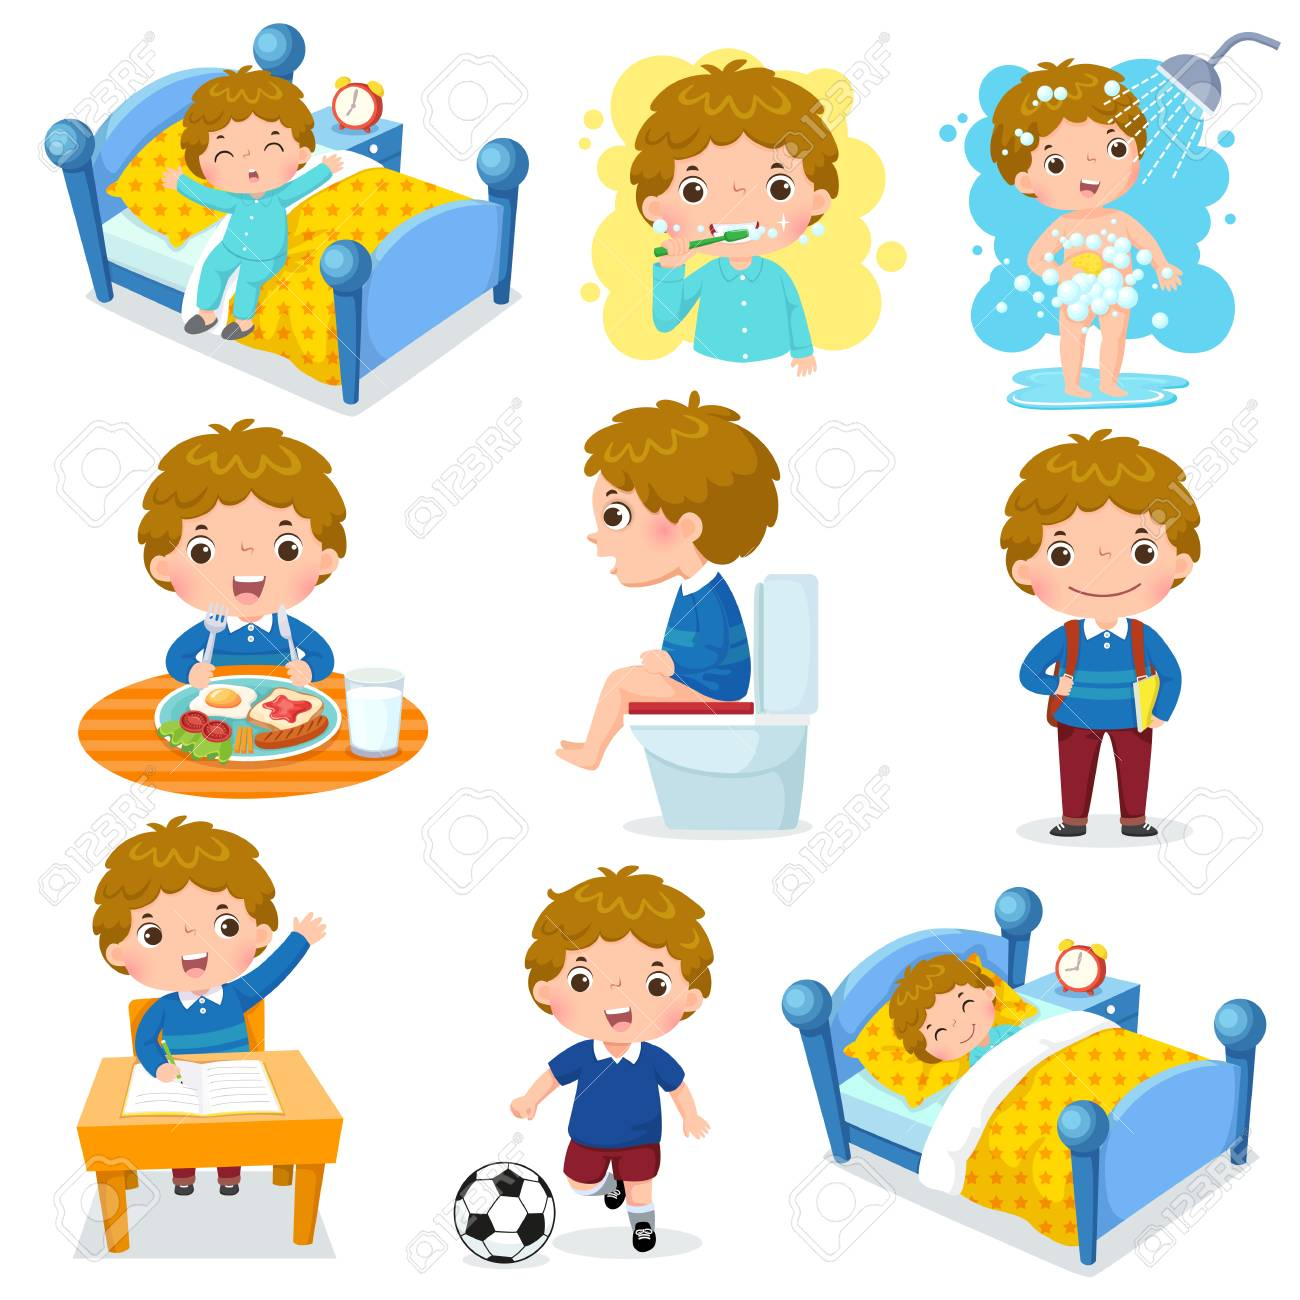 Illustration of daily routine activities for kids with cute boy - 96069152